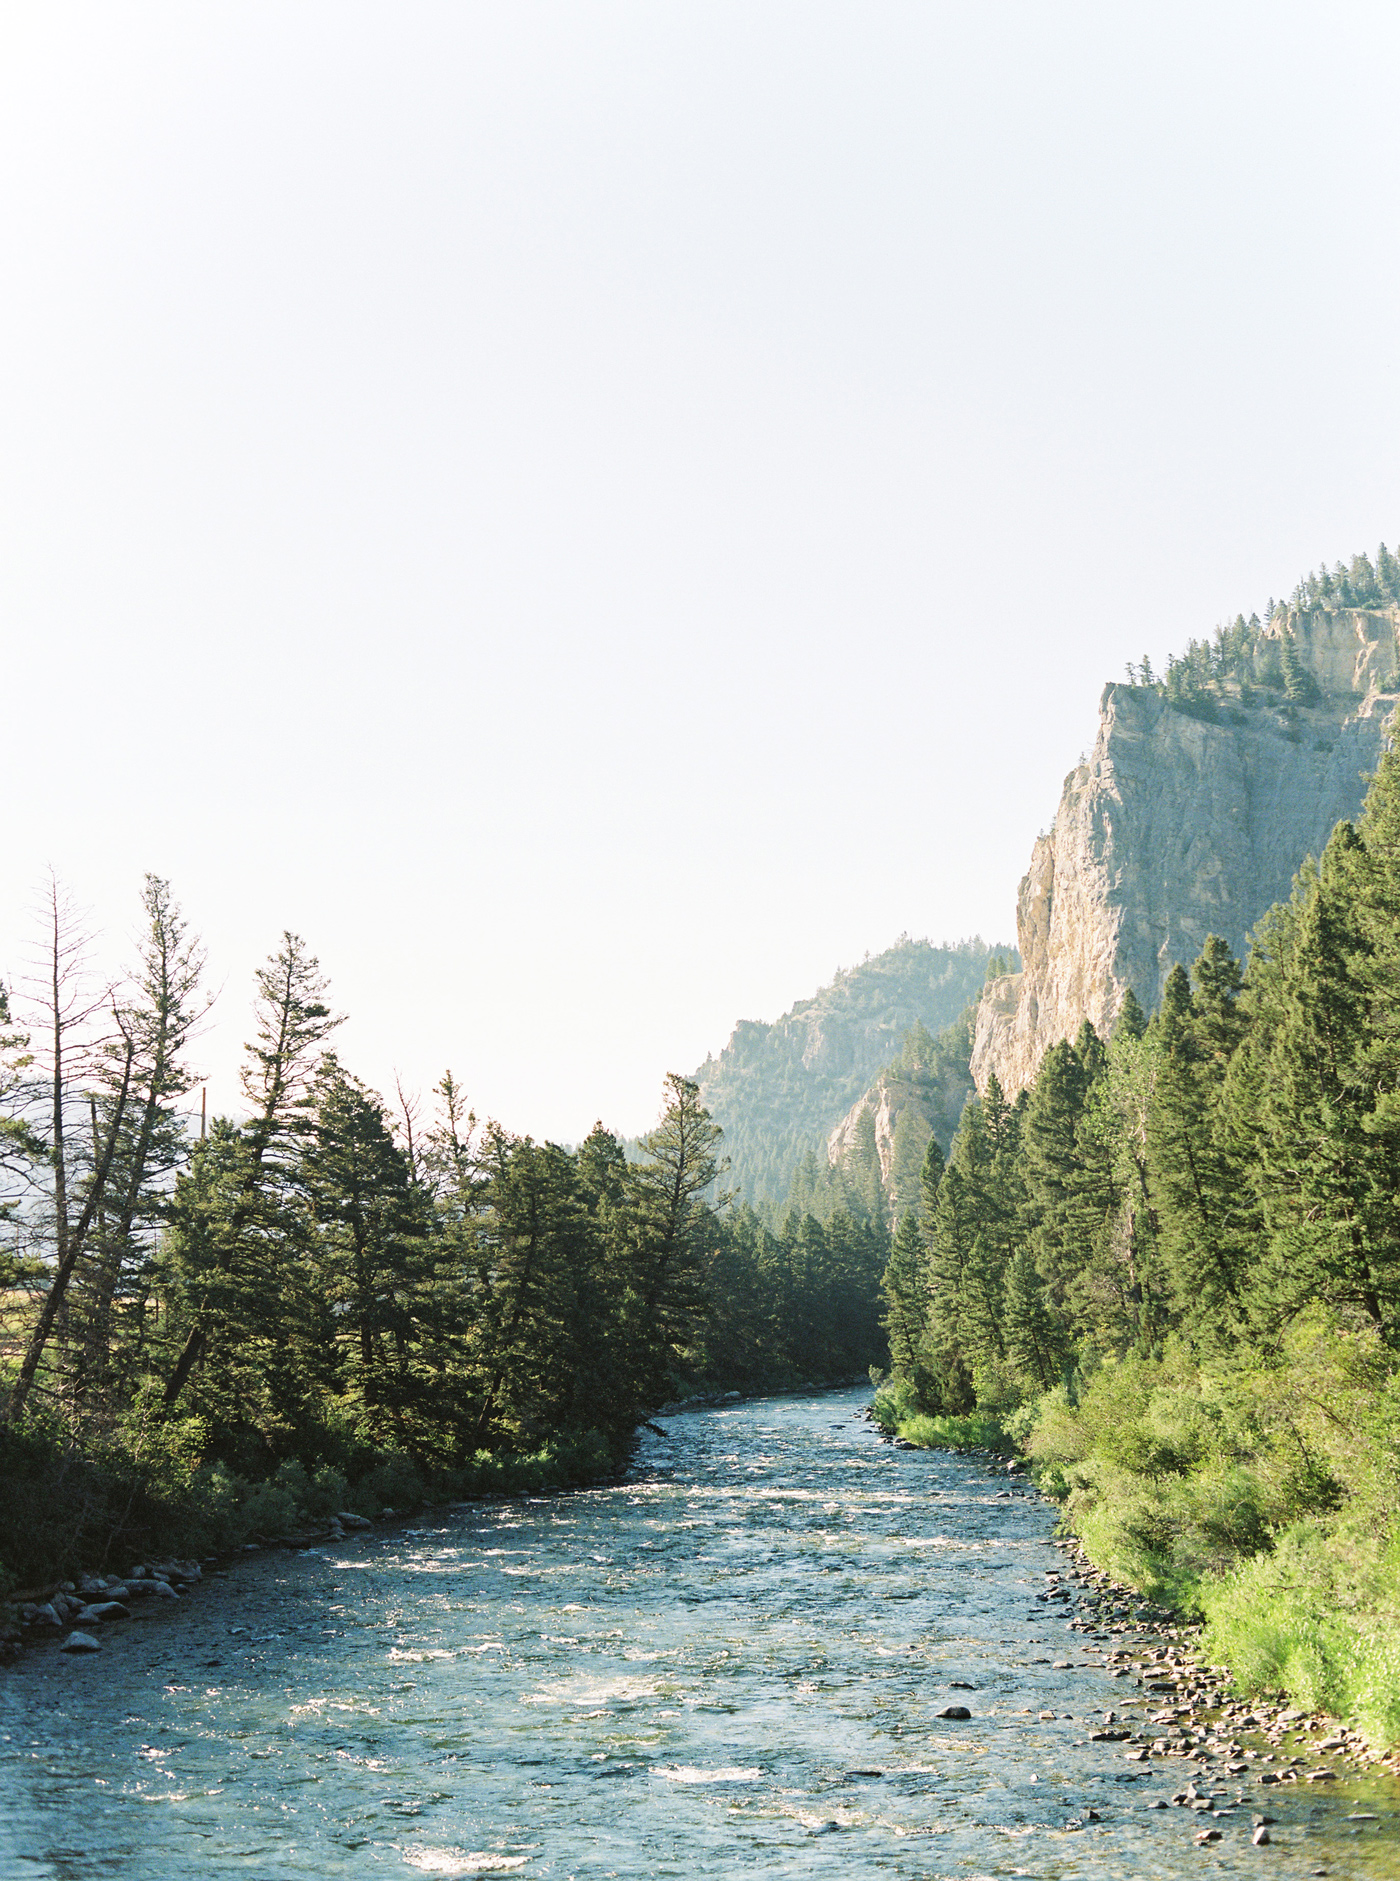 river lined with trees next to mountain side